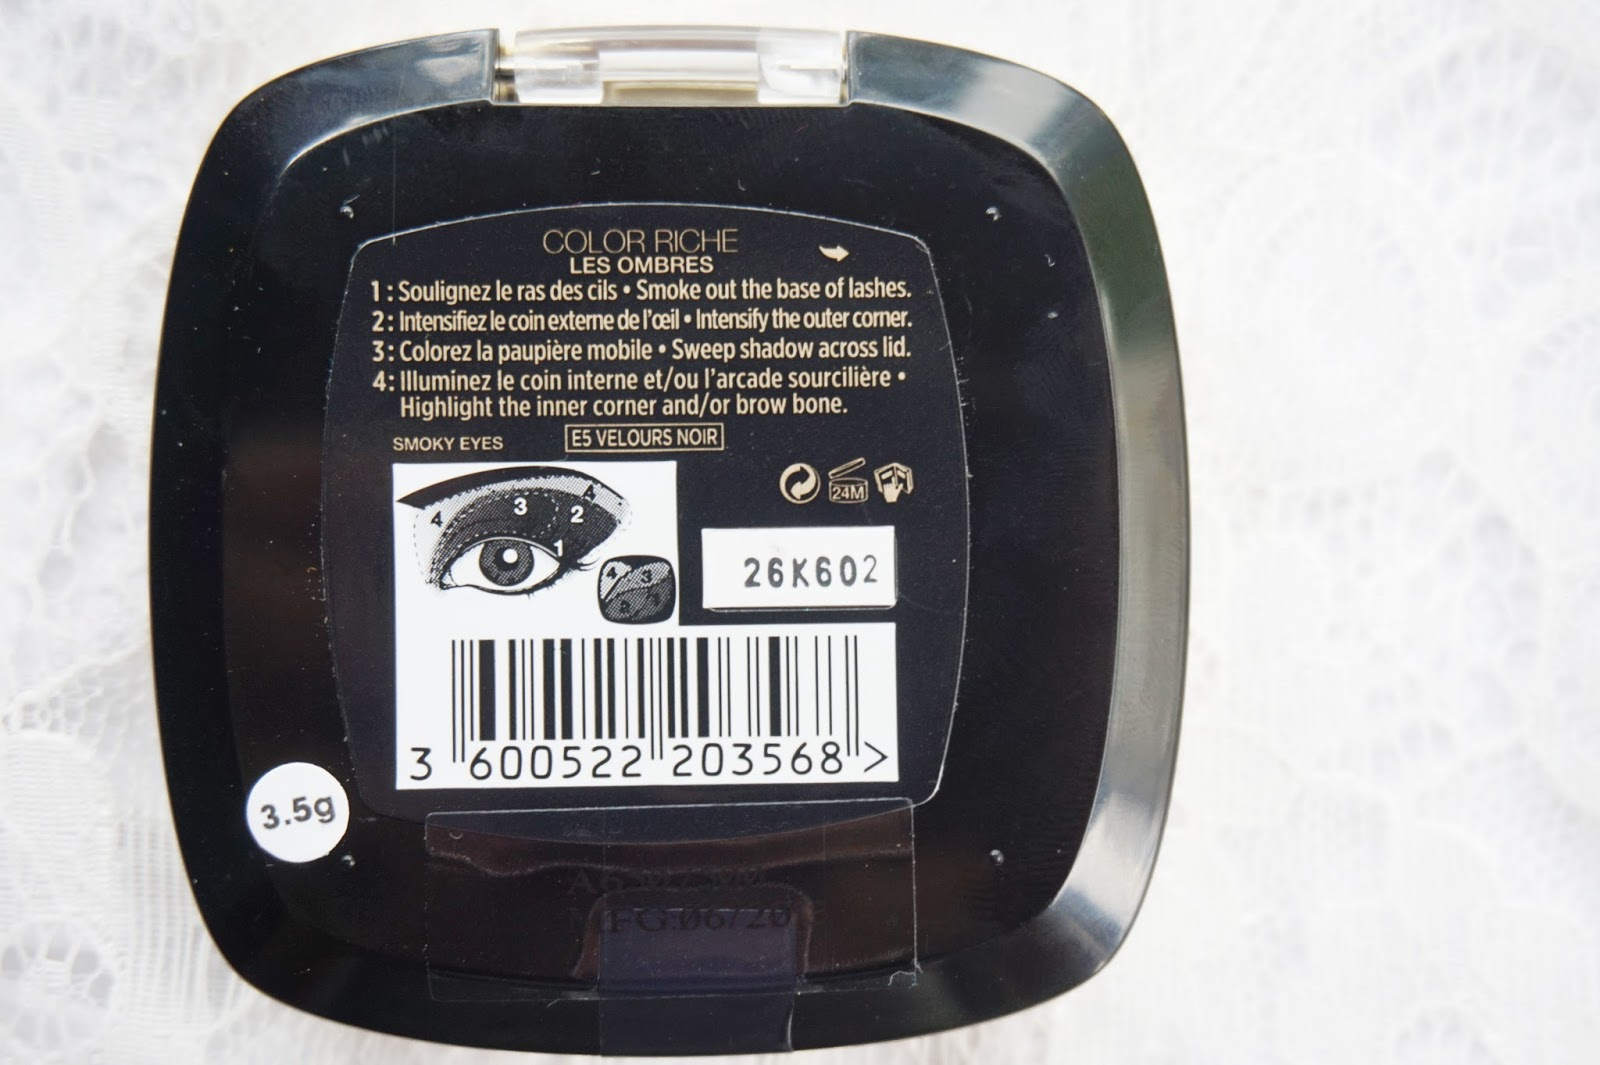 L'oreal Color Riche Les Ombres Eyeshadow in Velours Noir Review